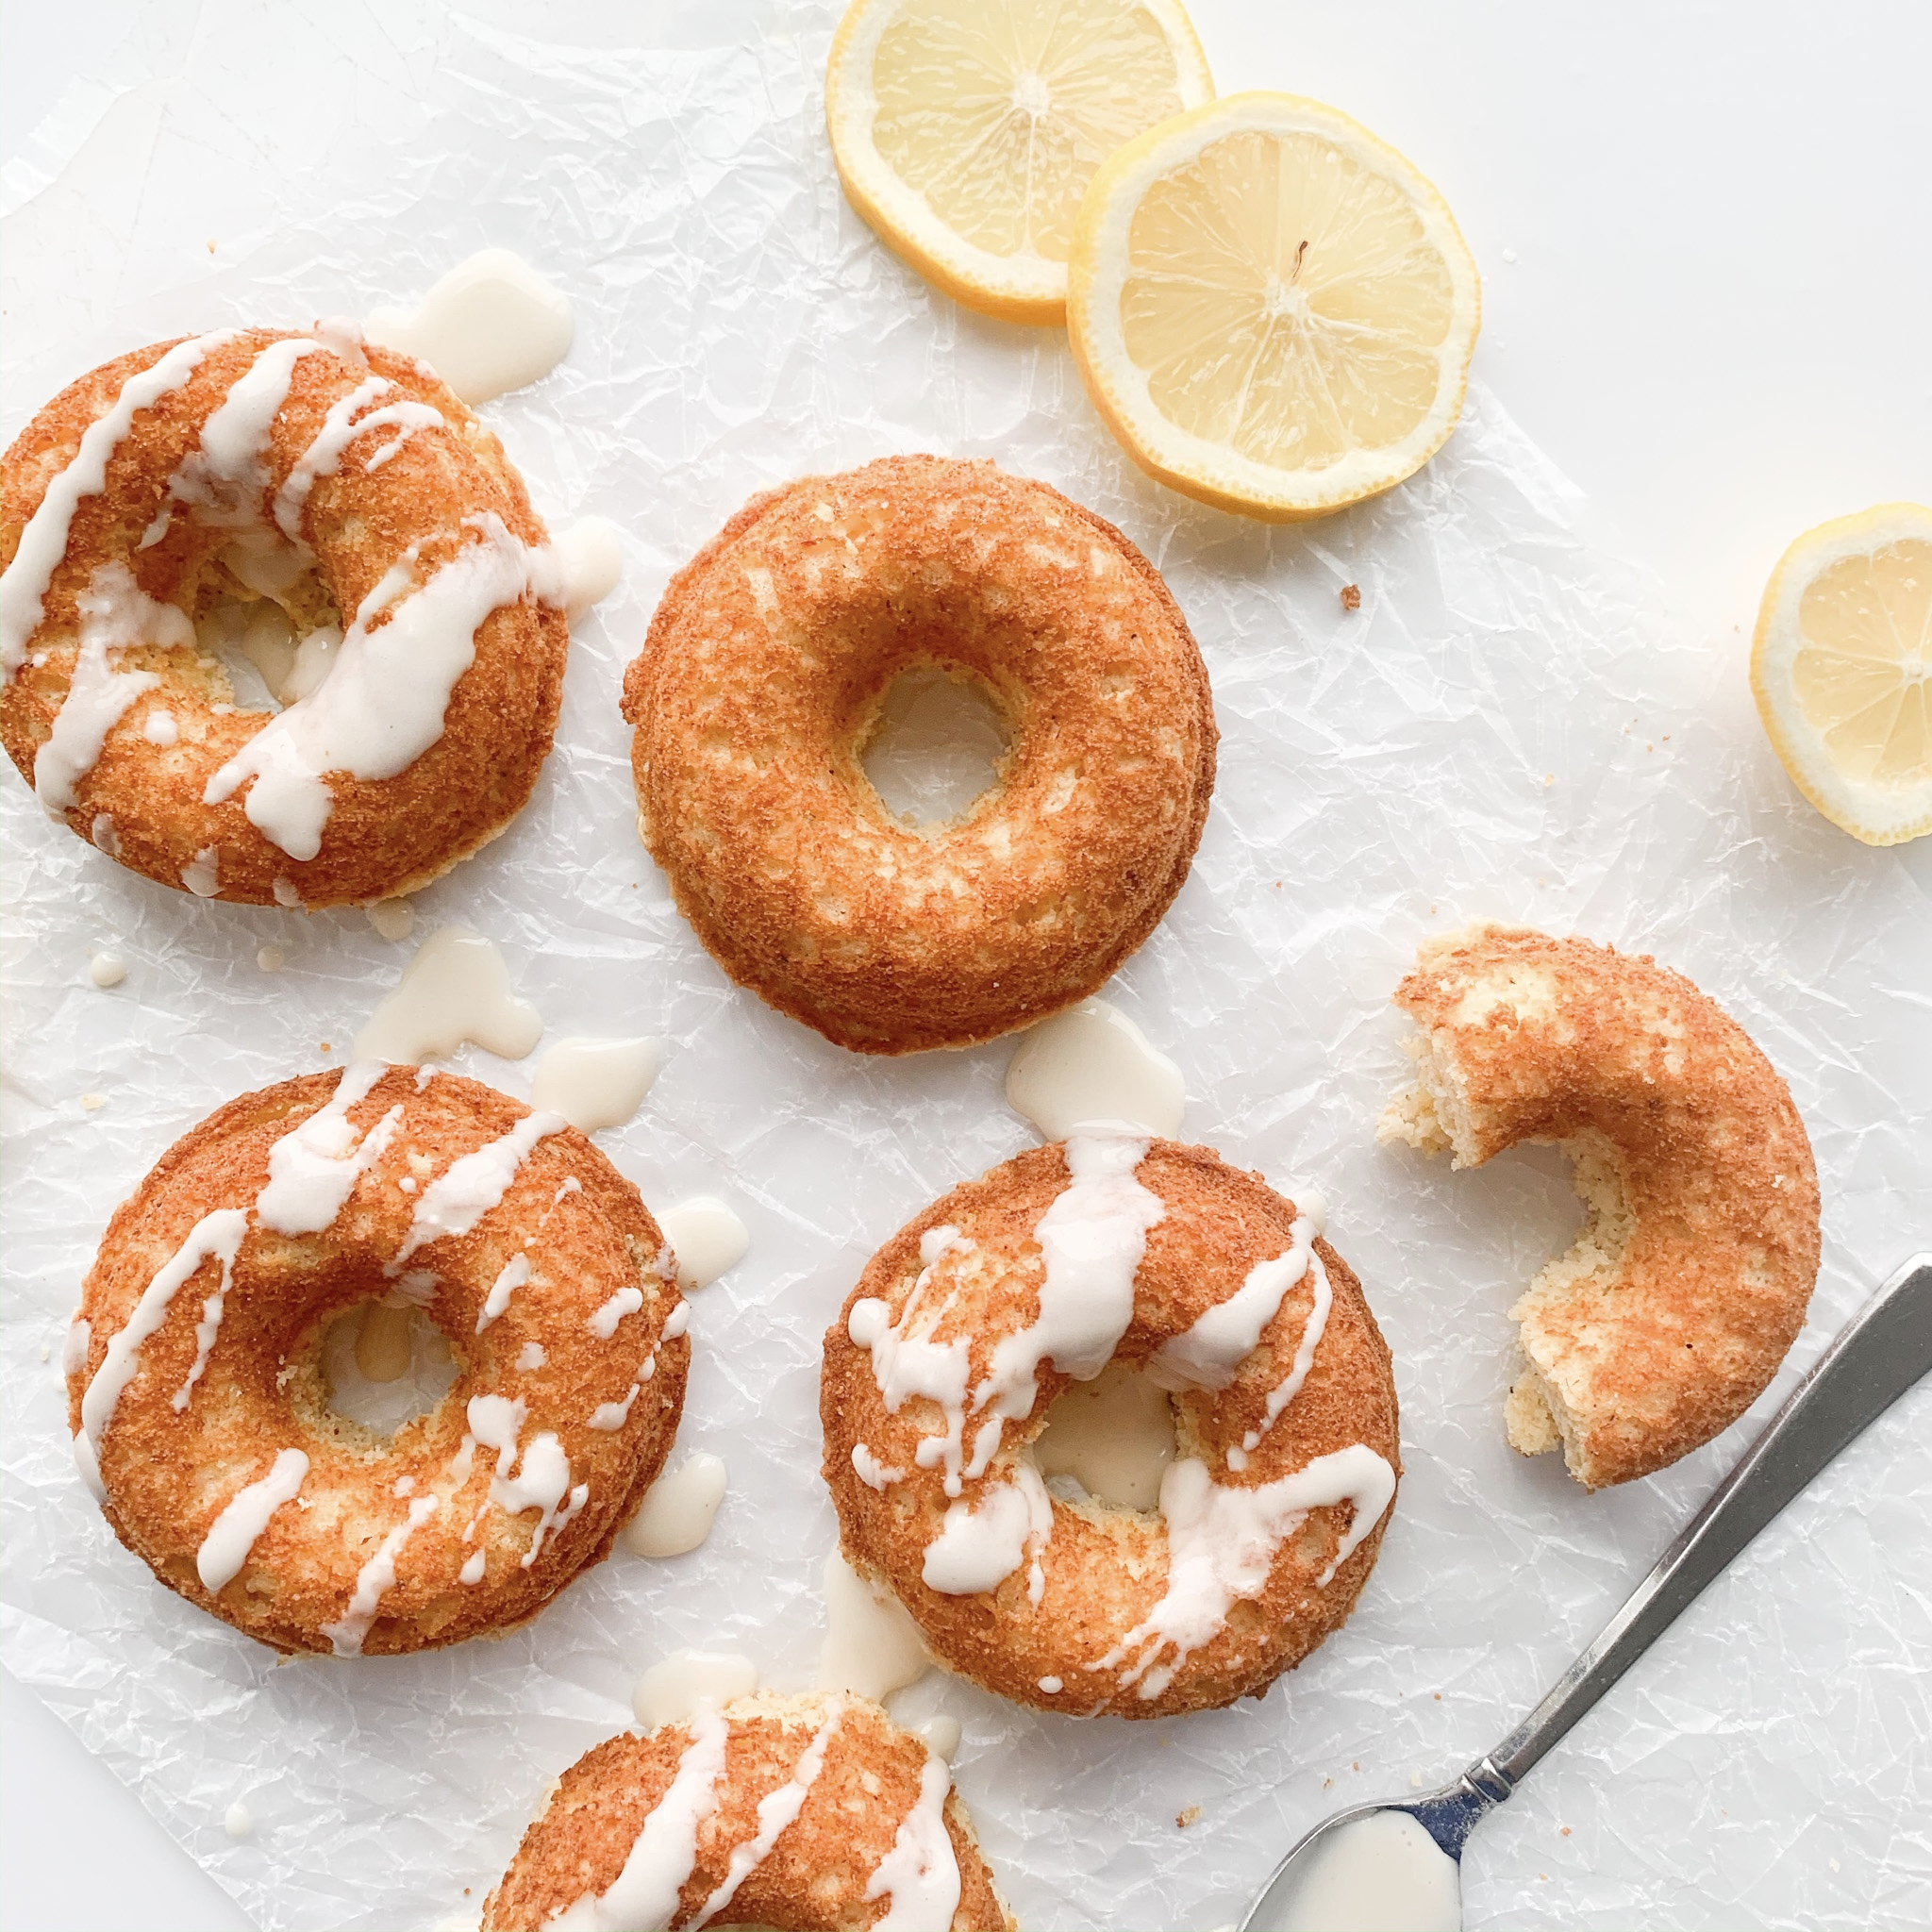 These delicious low carb and gluten-free lemon donuts are a great keto treat.